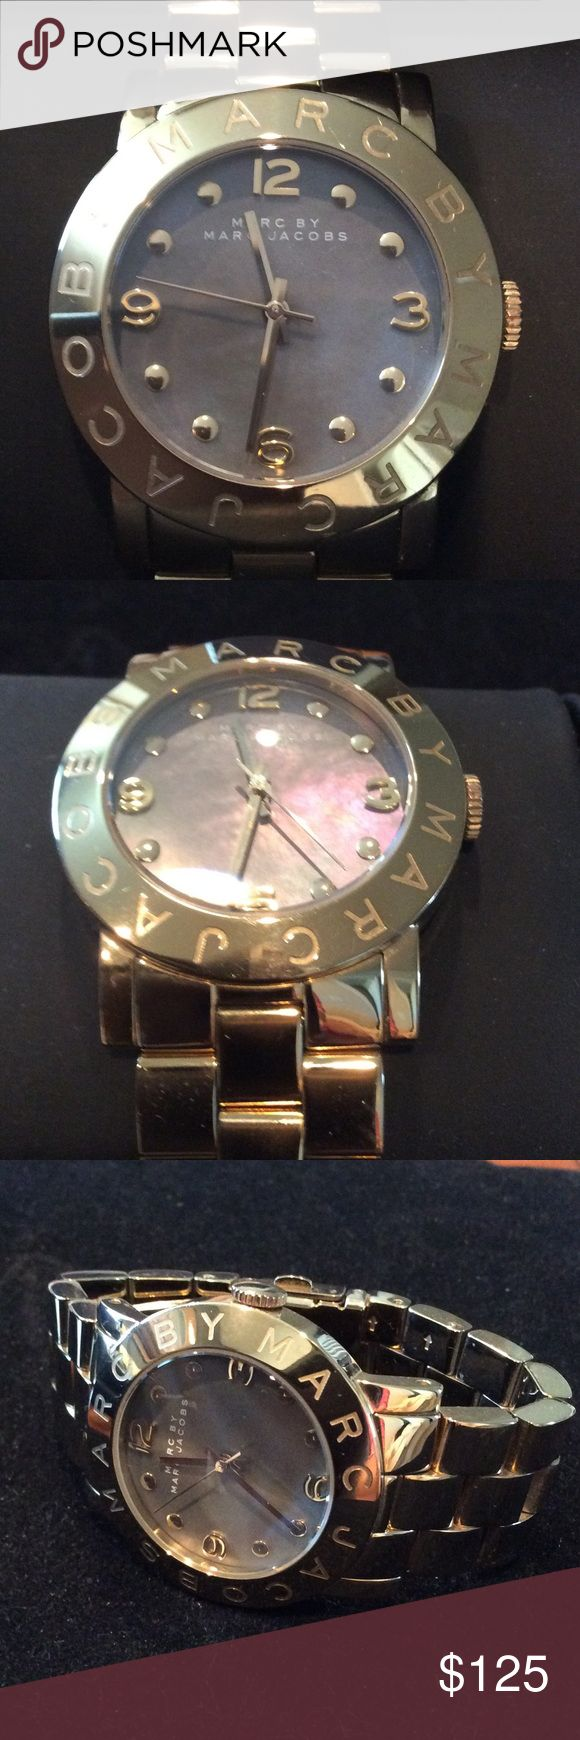 Marc Jacobs Gold Accent Watch Marc Jacobs Designer of fashion, this Fabulous Watch offers style and classy sass. Battery operated and functioning, additional links shown included. Marc By Marc Jacobs Accessories Watches